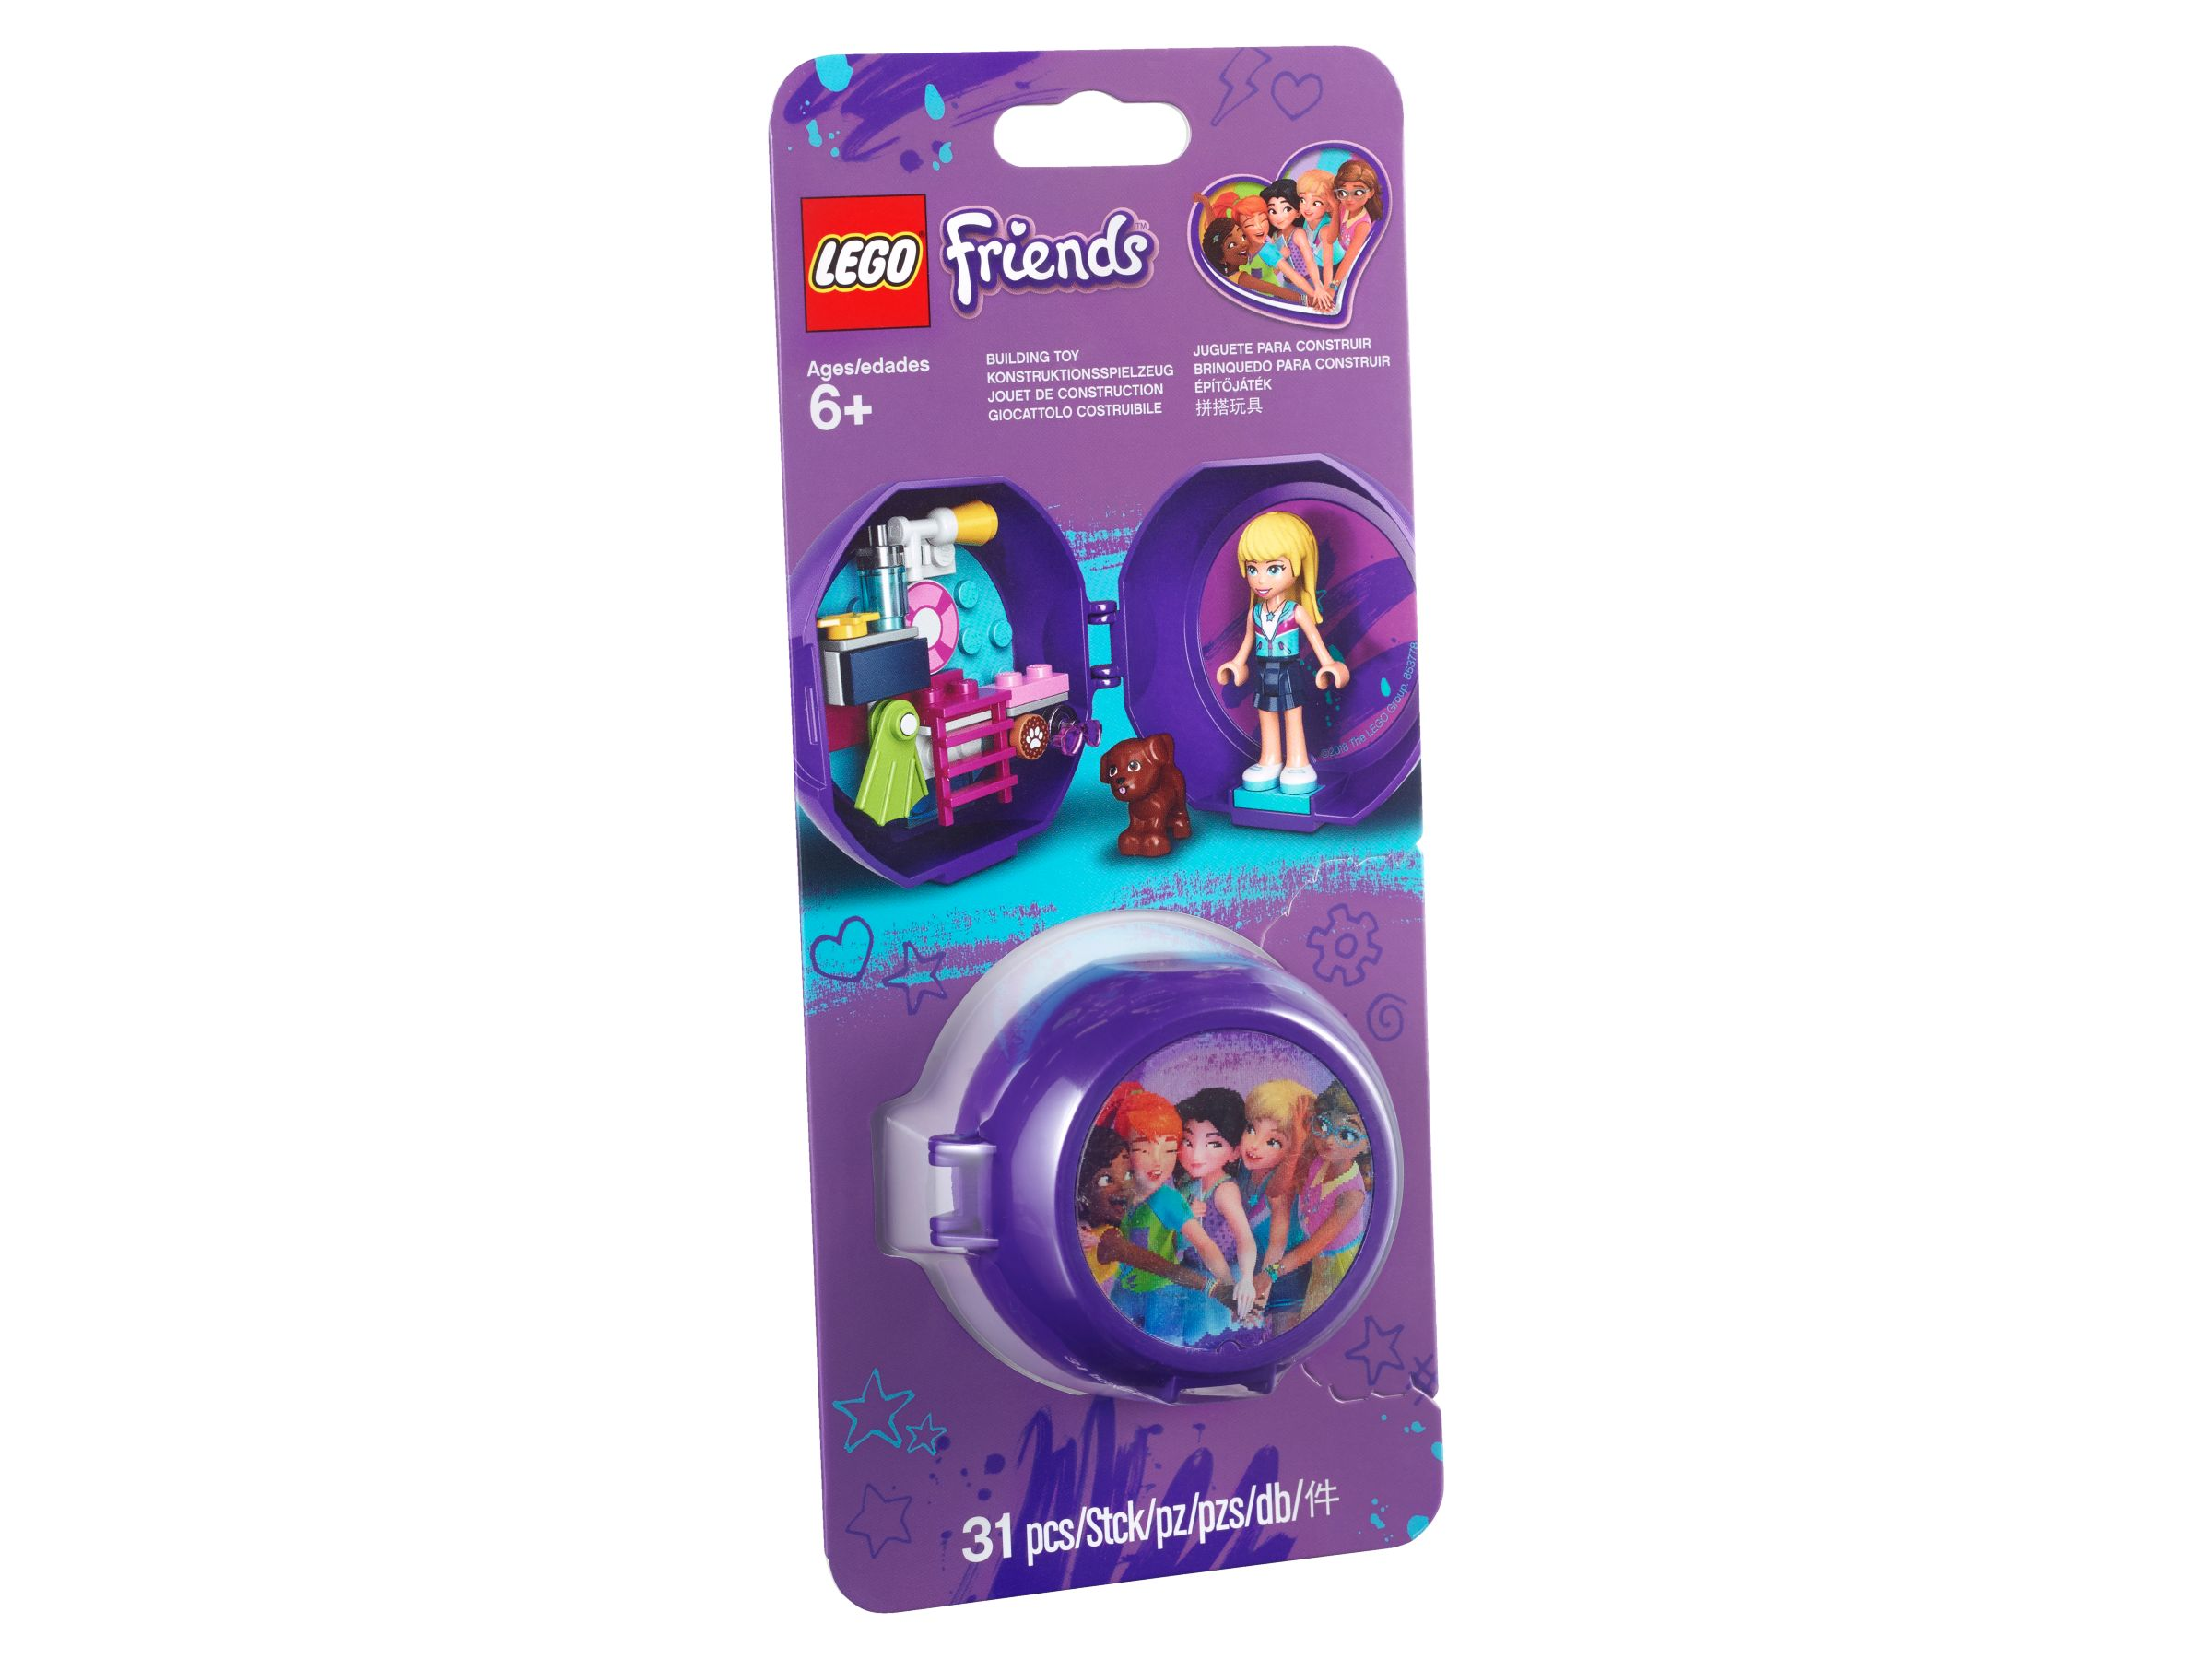 LEGO Friends 853778 Stephanies Pool-Pod LEGO_853778_alt1.jpg